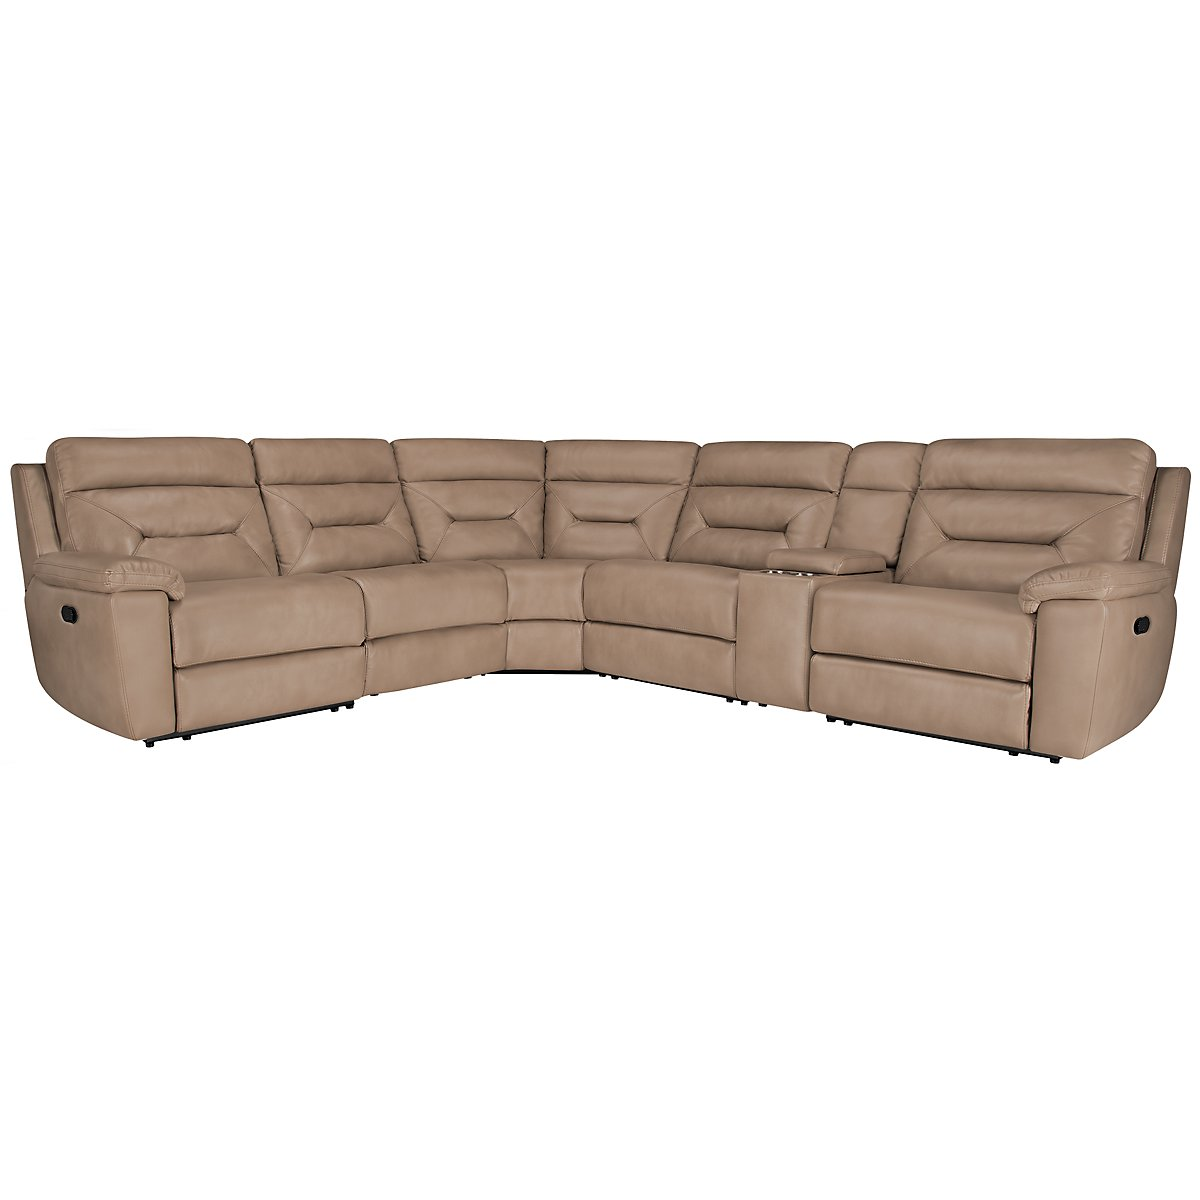 Phoenix Dk Beige Microfiber Small Two-Arm Manually Reclining Sectional